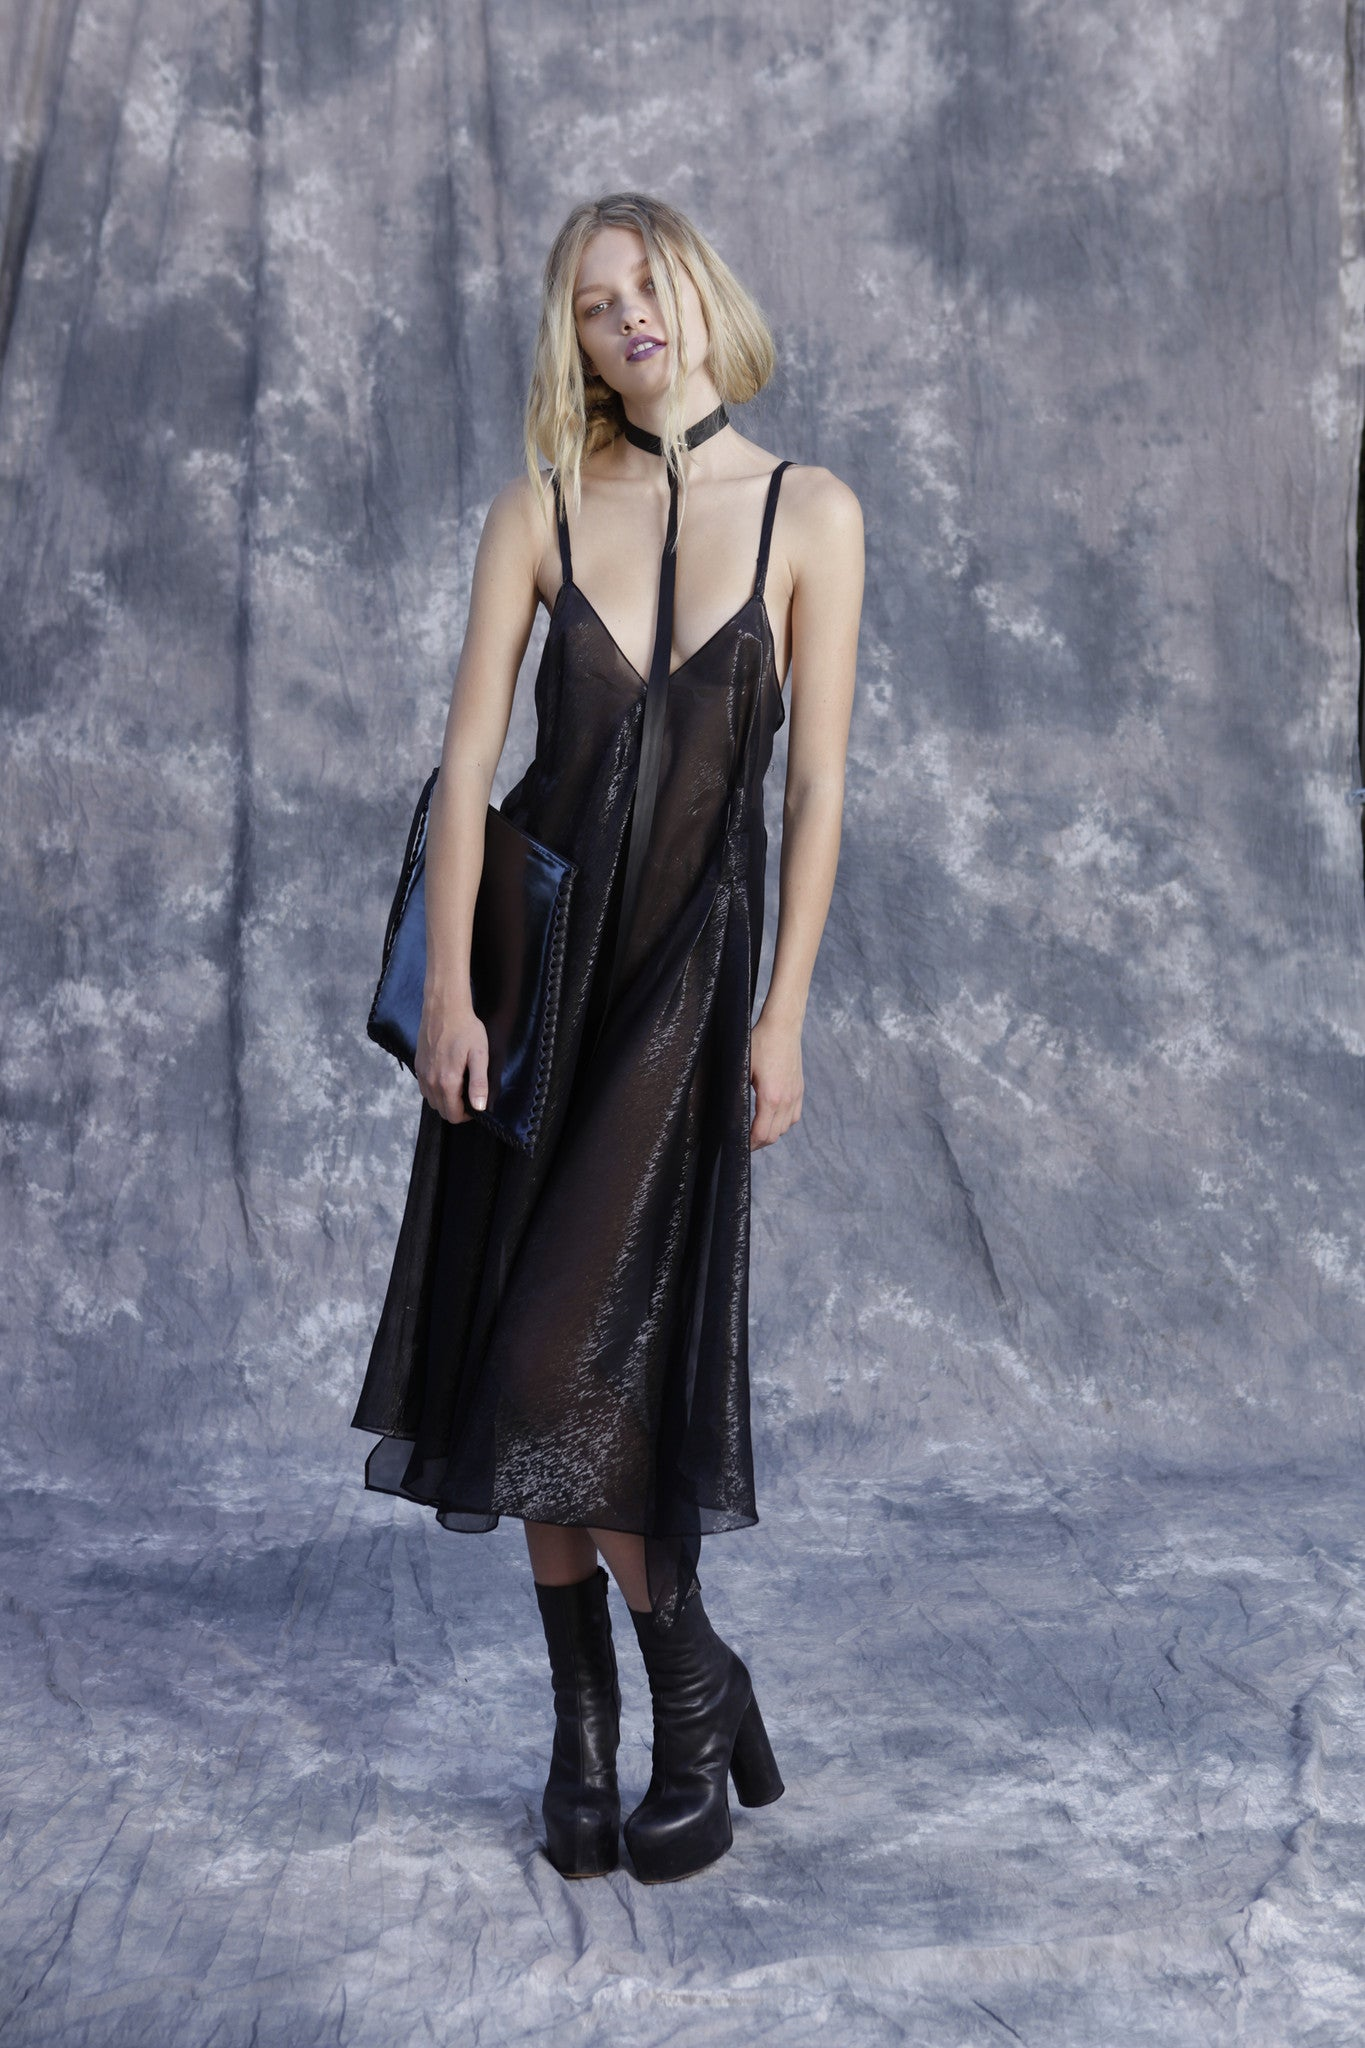 Maggie Laine IMG model Wendy Nichol New York Clothing Designer Handmade in NYC New York City SS17 Fashion Runway Show Signals to the Mothership Made to Order Custom Tailoring Made to Measure Sheer Sparkle Dark Navy Deep V Slip Dress Plunge Neck Low Cut Slip Dress Silk Open back Death Valley Leather Rainbow Holographic Diamond Clutch Leather Triangle Toggle Leather Choker